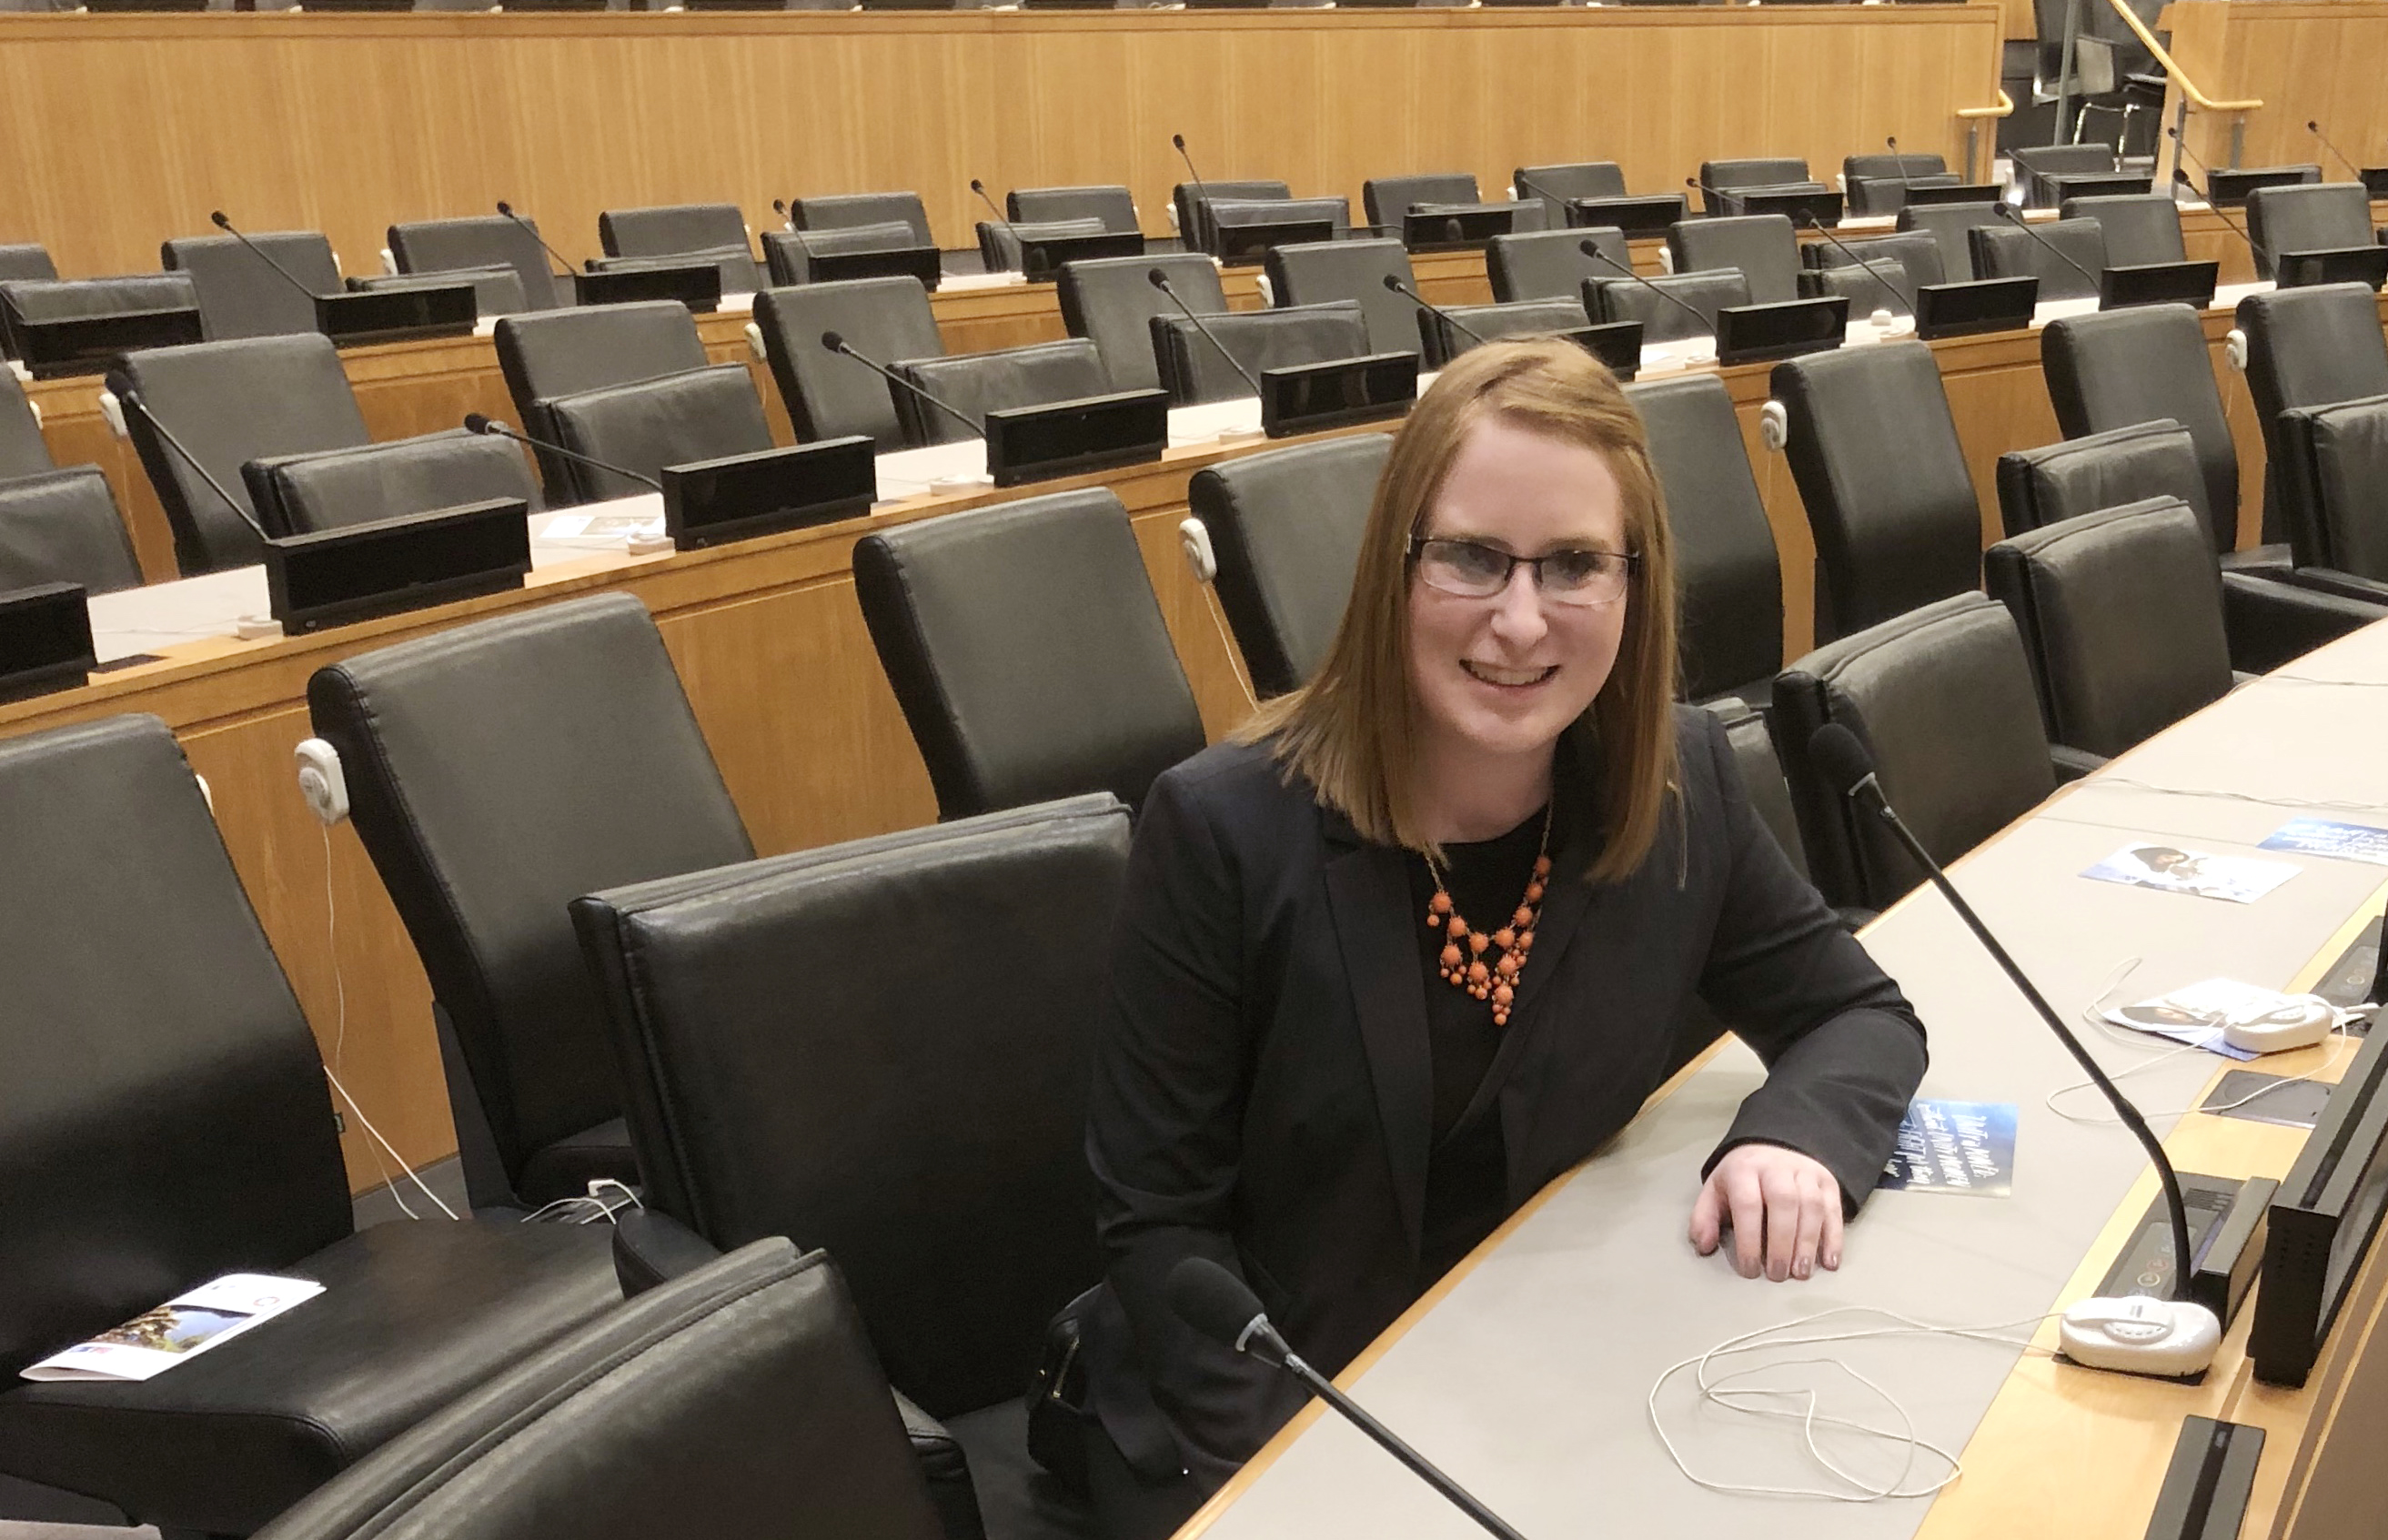 Student sitting in chair at the United Nations